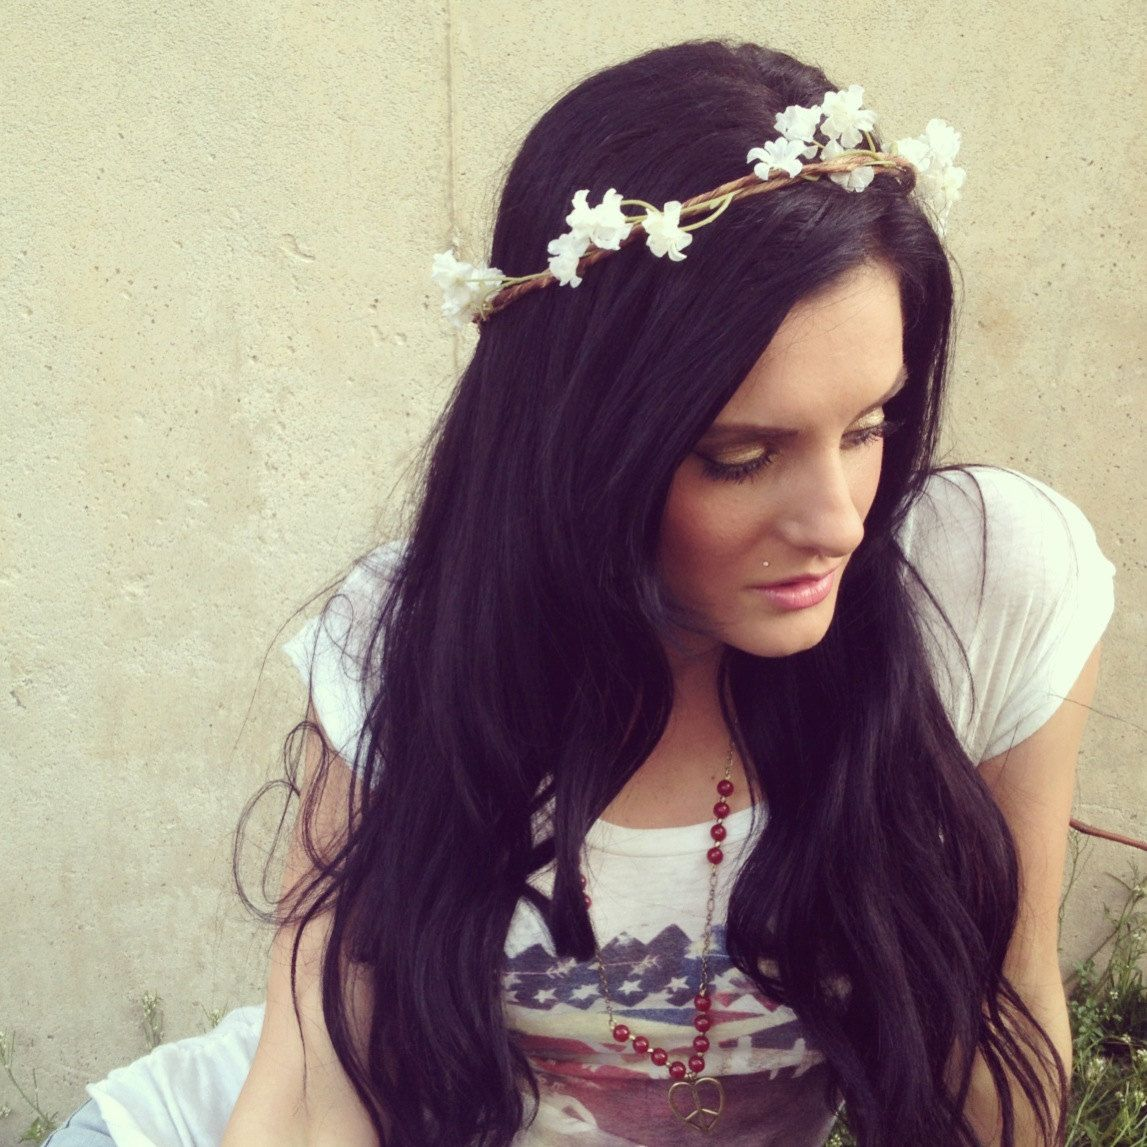 Coachella Edc Goddess Hair Wreathes Mini White Blooms Headband